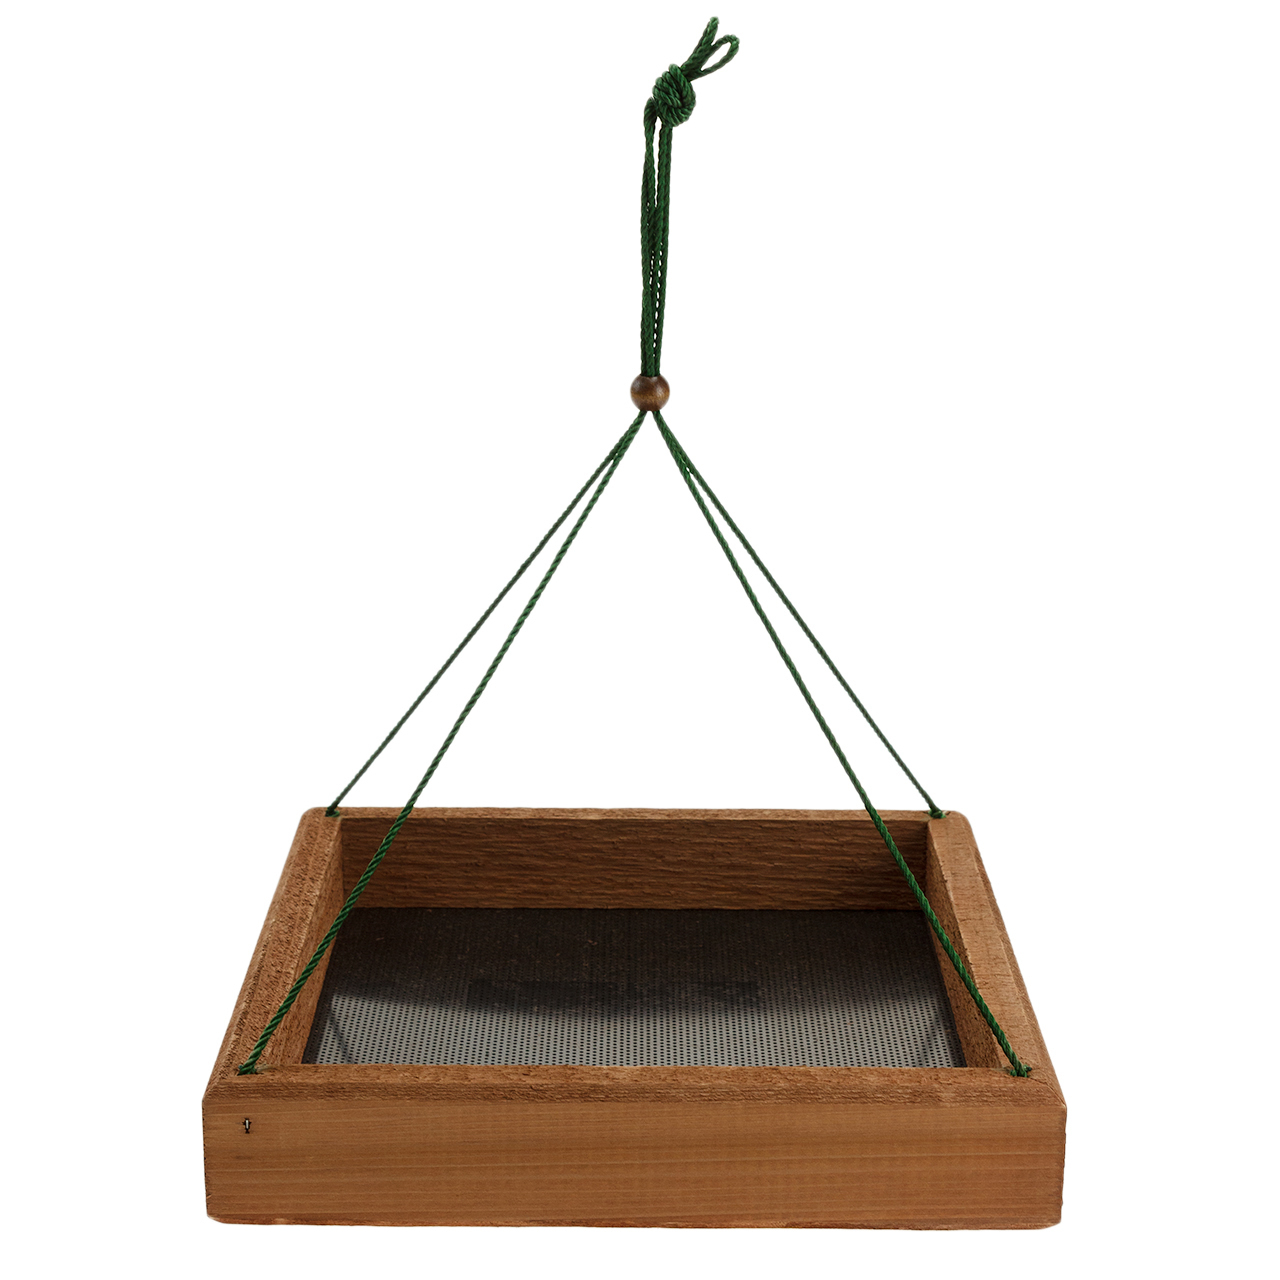 12 x 12 Hanging Tray Feeder